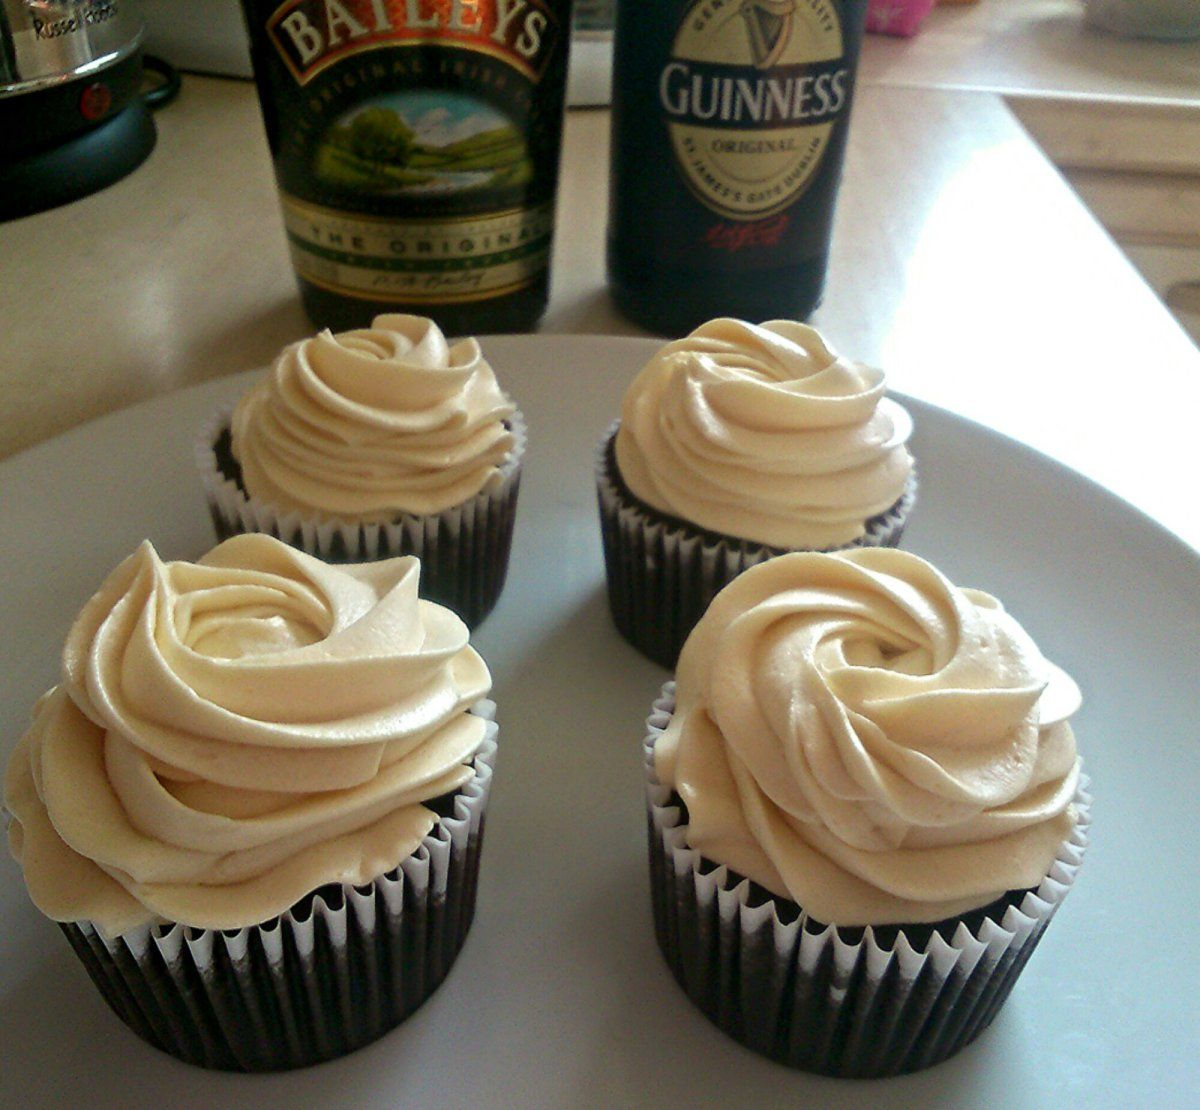 I don't tend to make many cupcakes these days but since I was going to a St. Patrick's Day party this weekend I thought it would be a perfect excuse to bake a batch of these beauties. I…